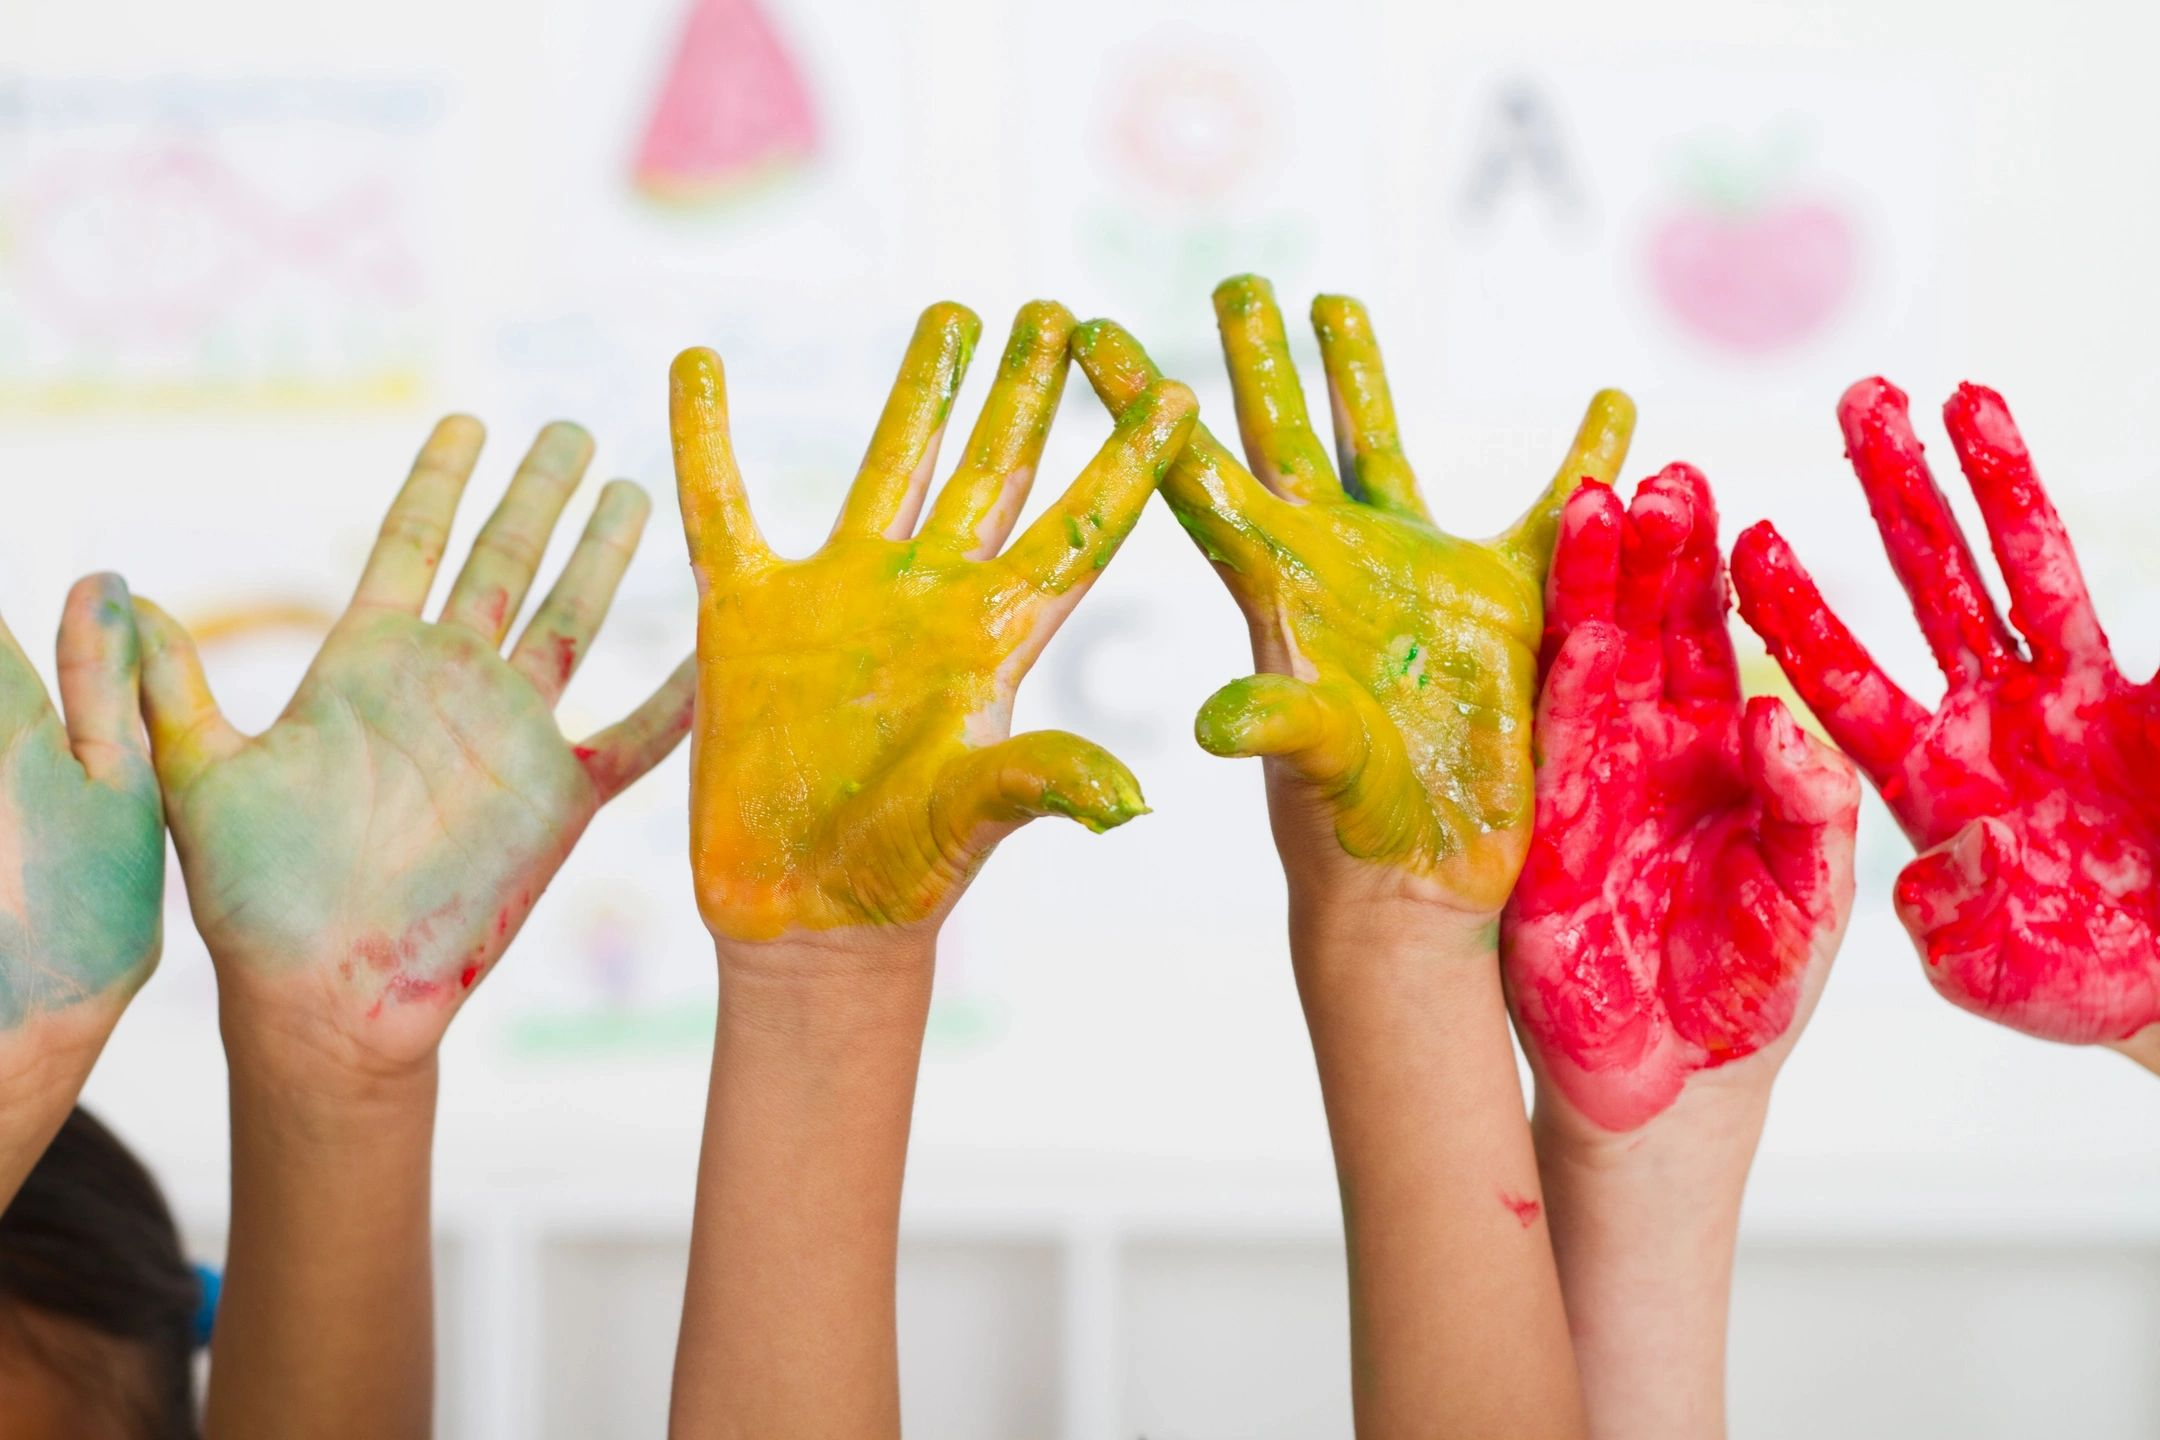 Small hands covered in bright paint held high in the air for the camera